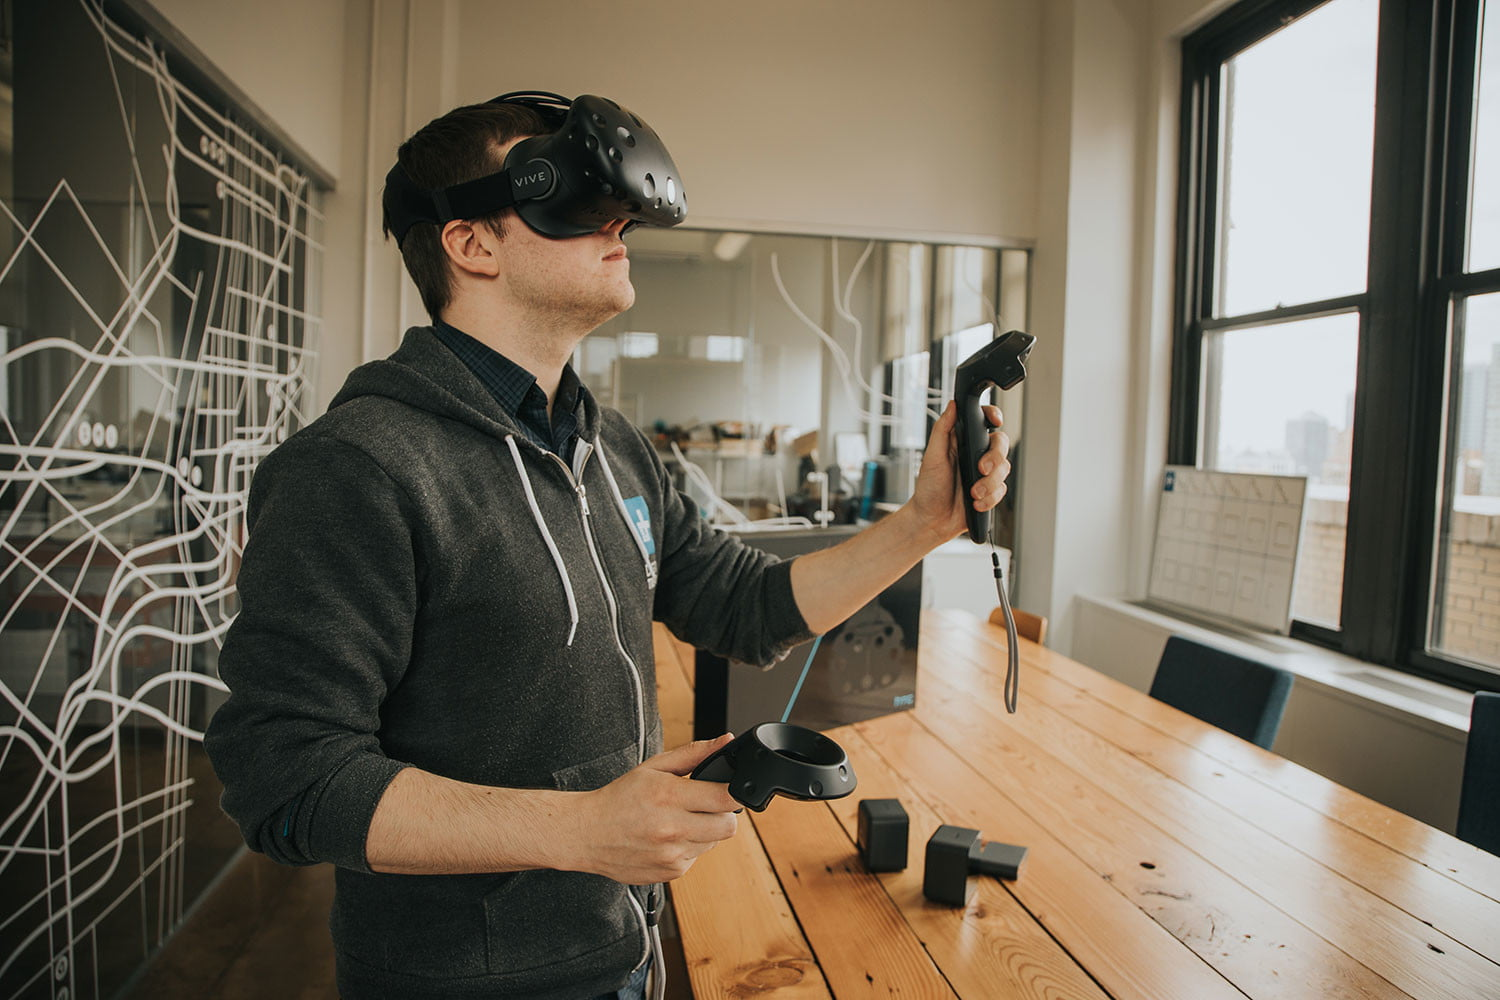 The Best Virtual Reality Apps for 2019 | Digital Trends